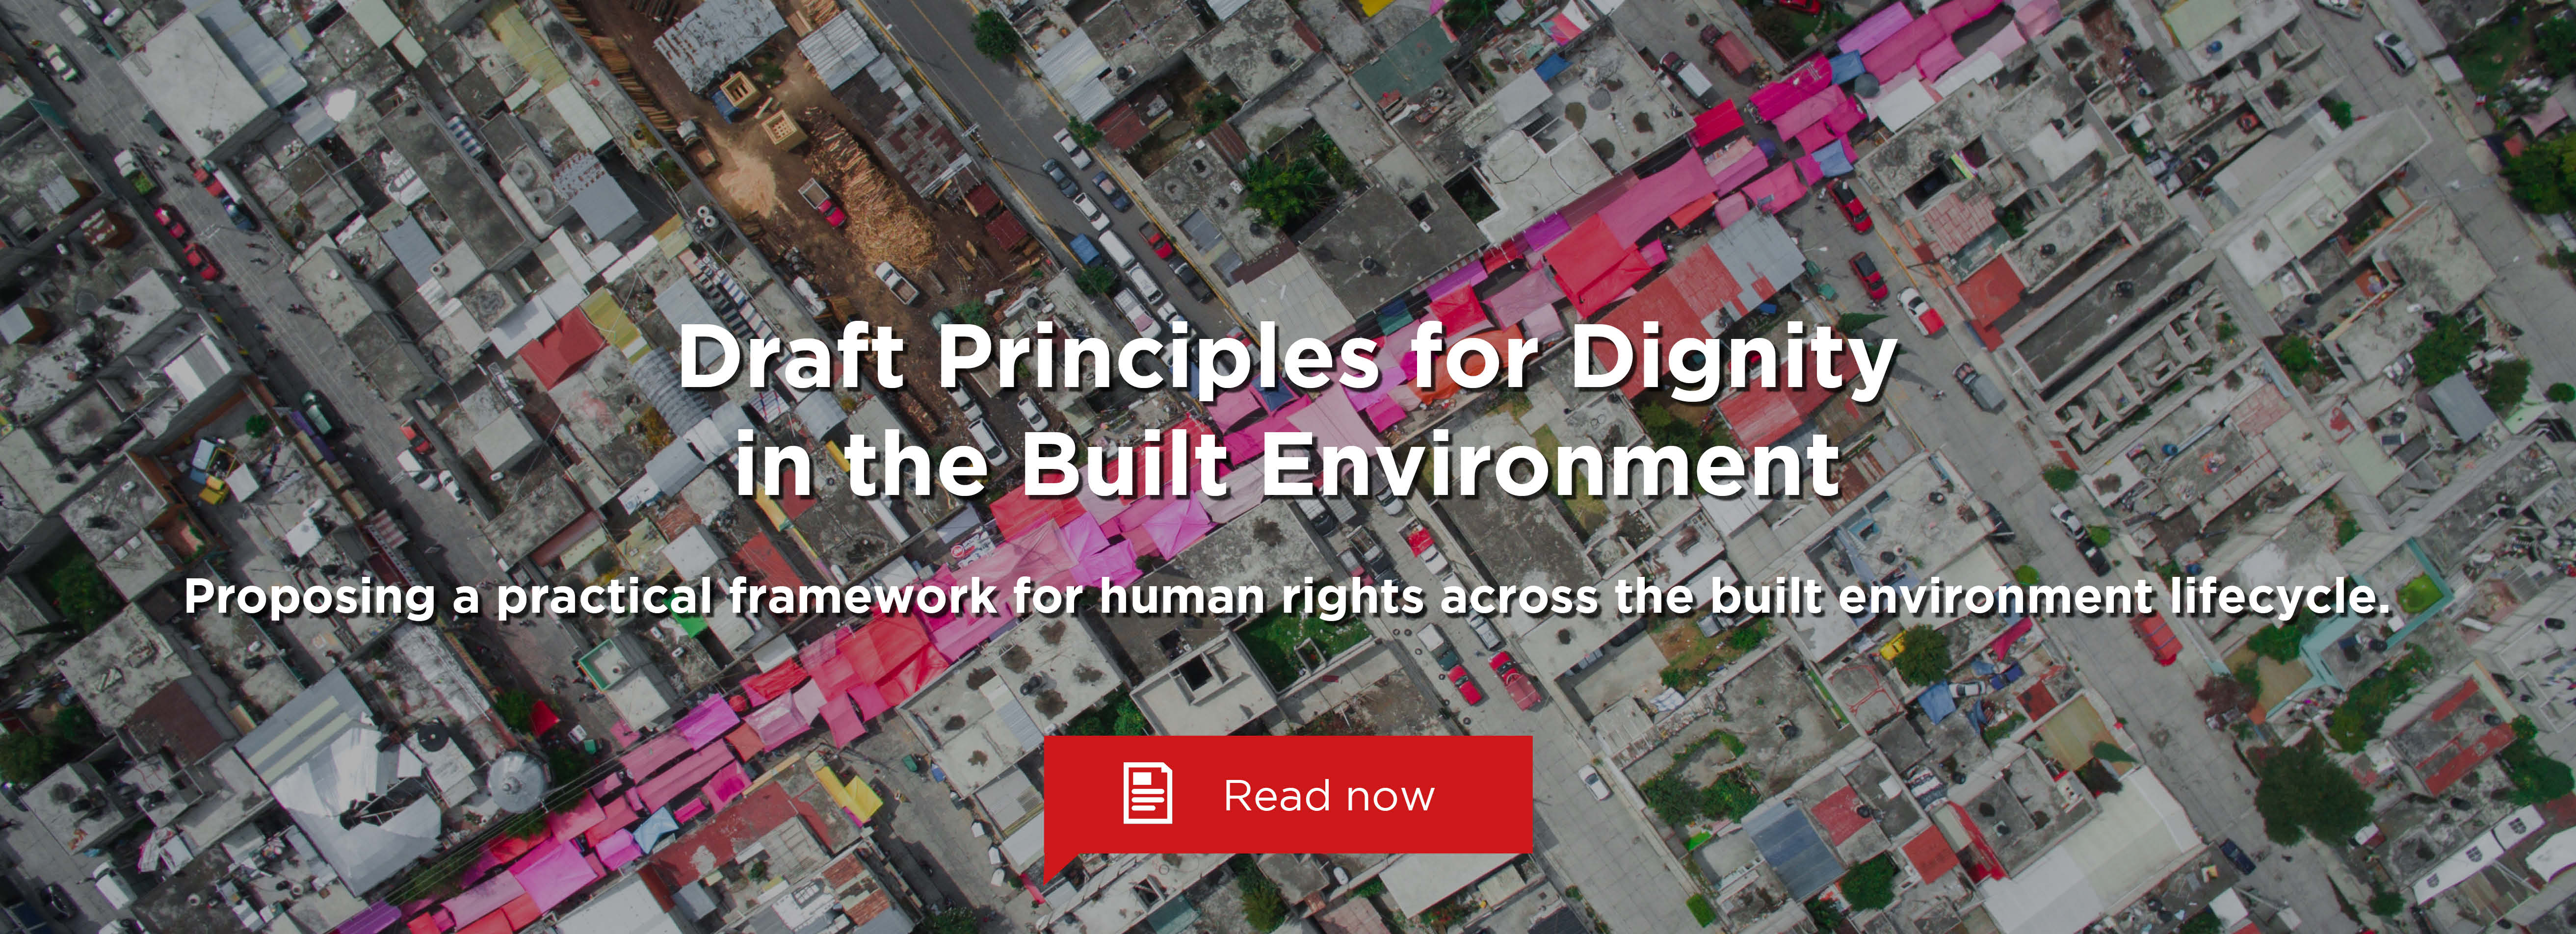 Draft Principles for Dignity in the Built Environment